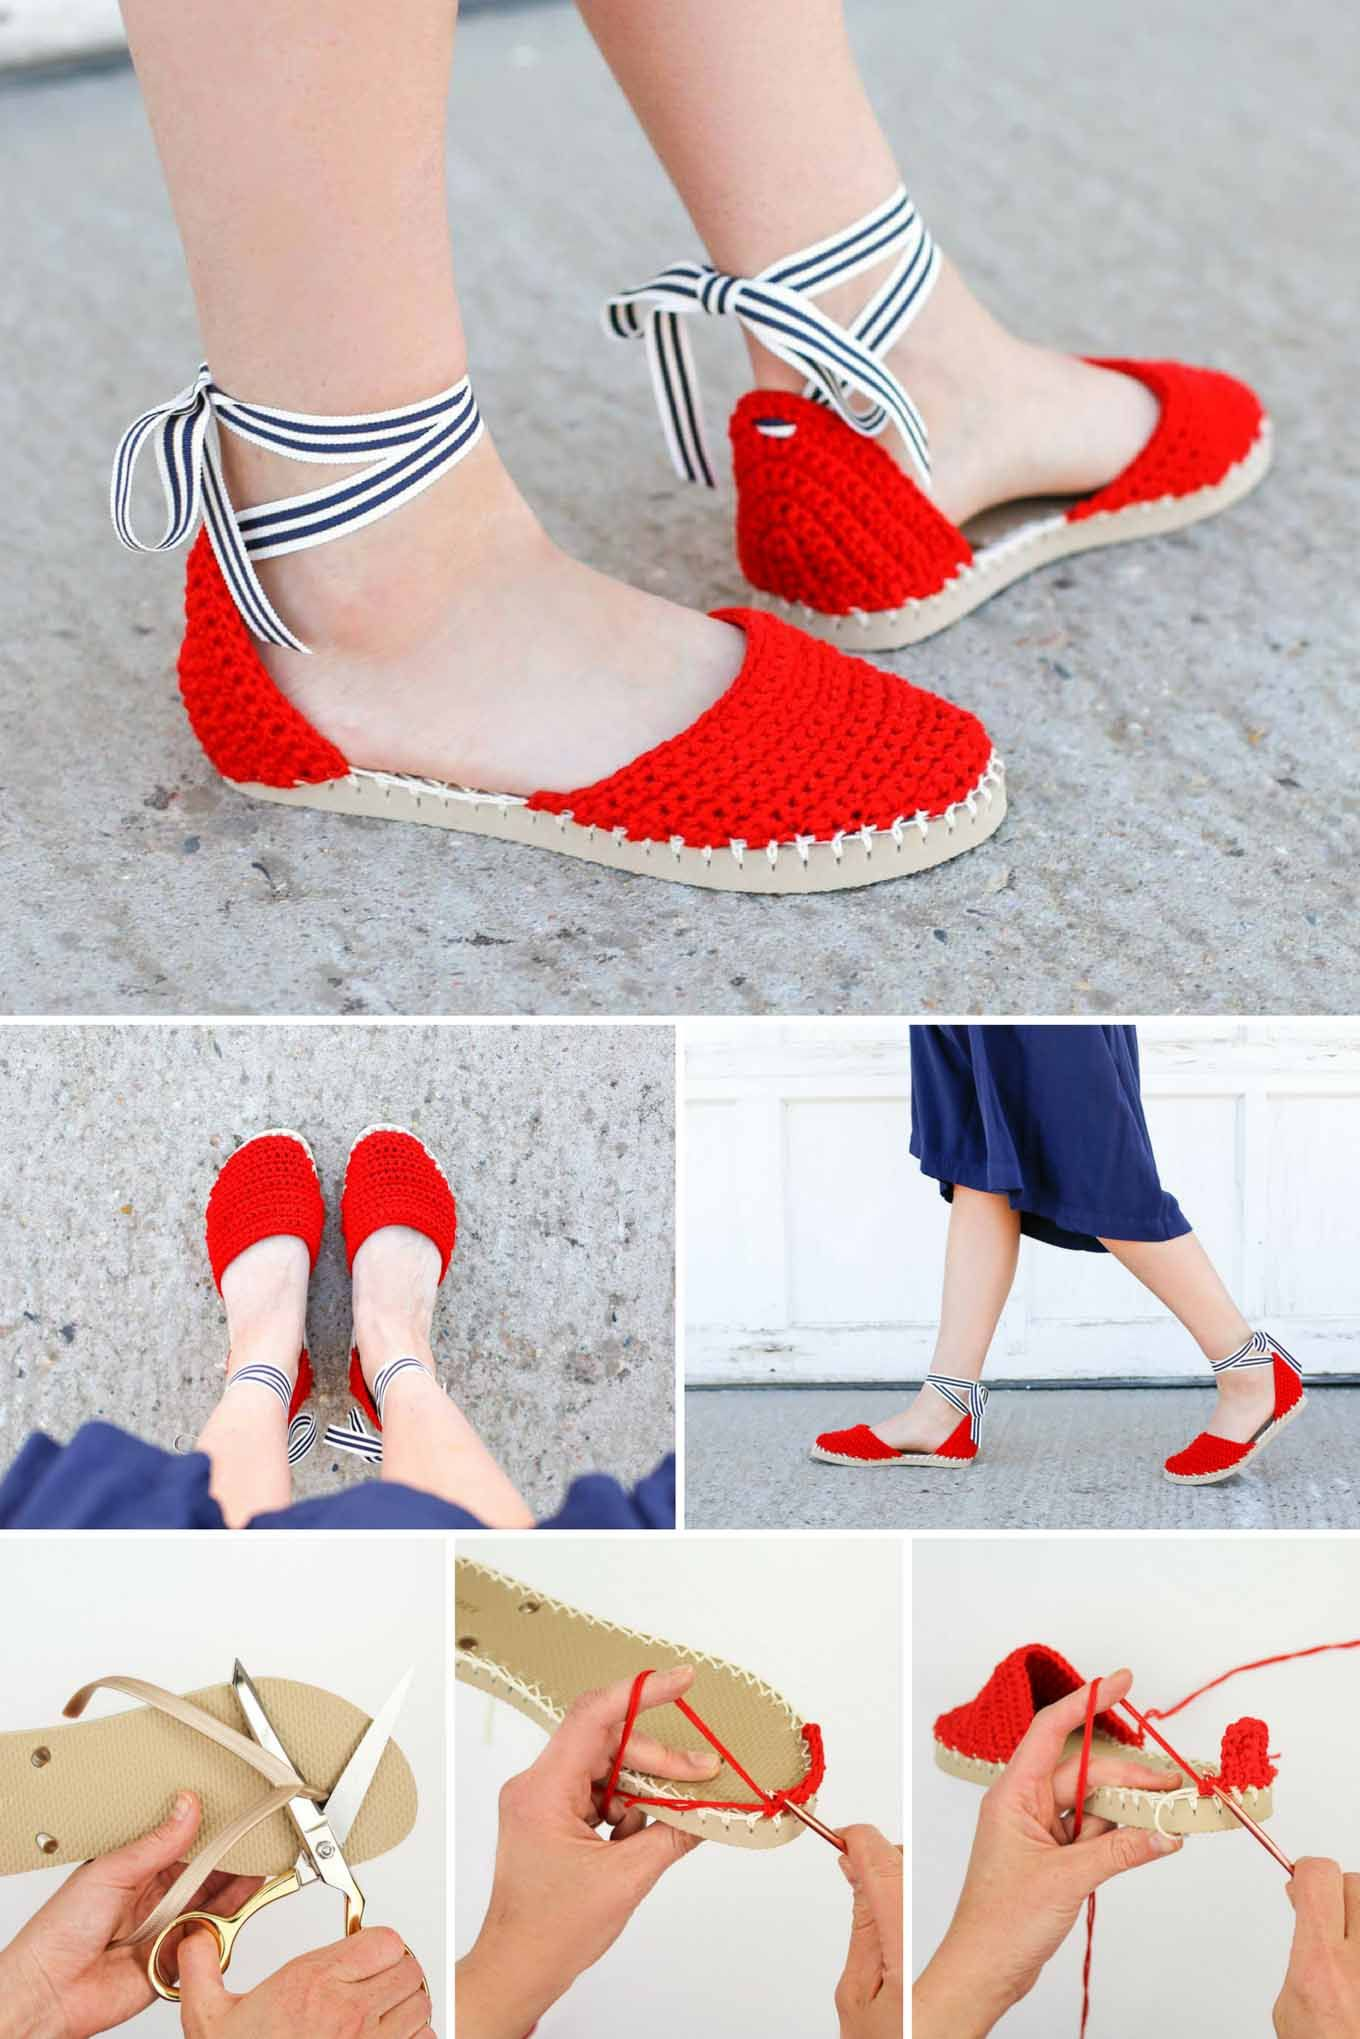 d3abfe238b2bd4 Learn how to make crochet espadrilles with flip flop soles in this free  pattern and tutorial. Pair these fun crochet sandals with a dress!